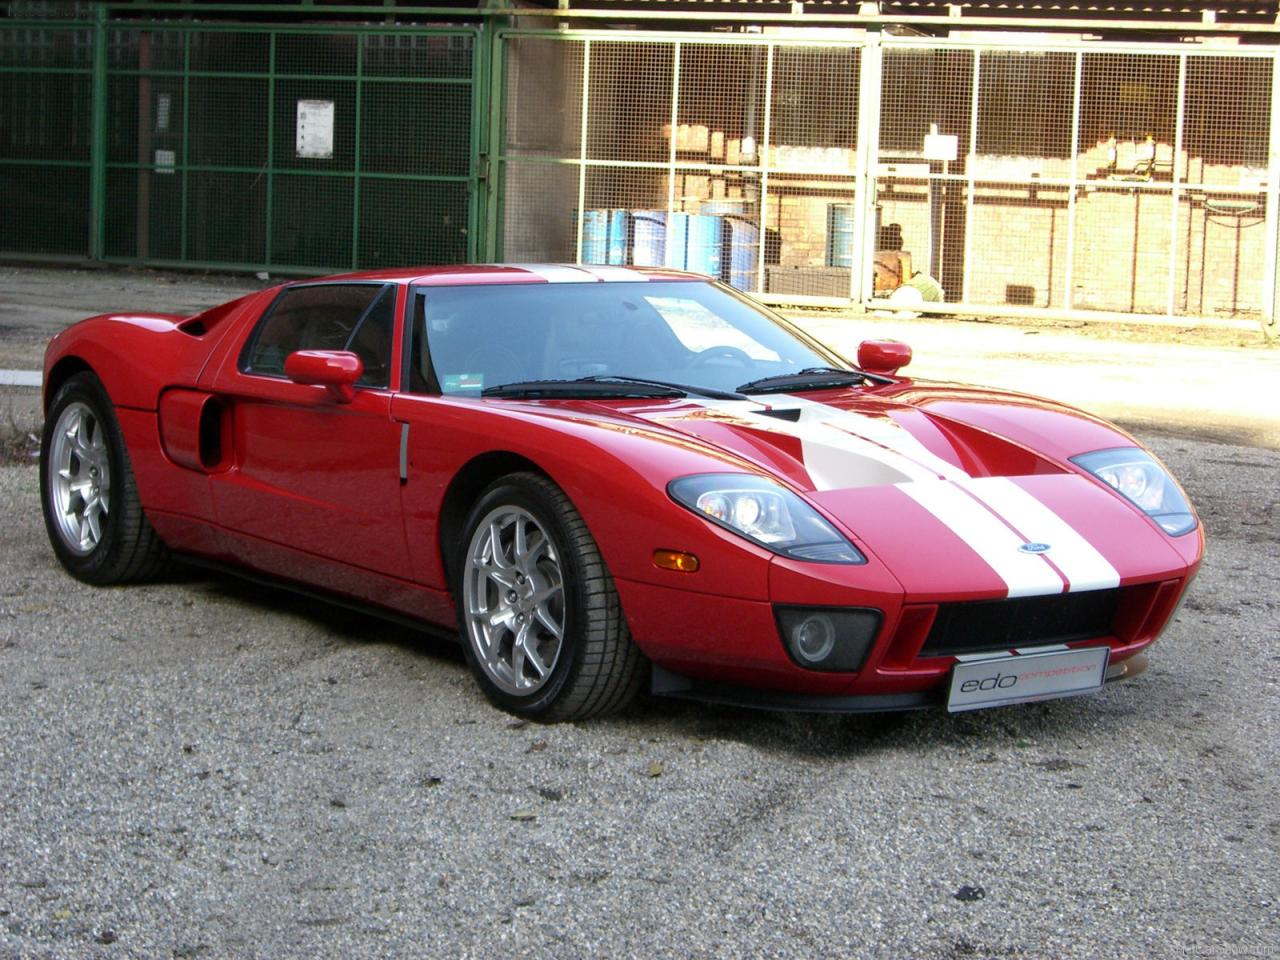 2006 ford gt information and photos zombiedrive. Black Bedroom Furniture Sets. Home Design Ideas